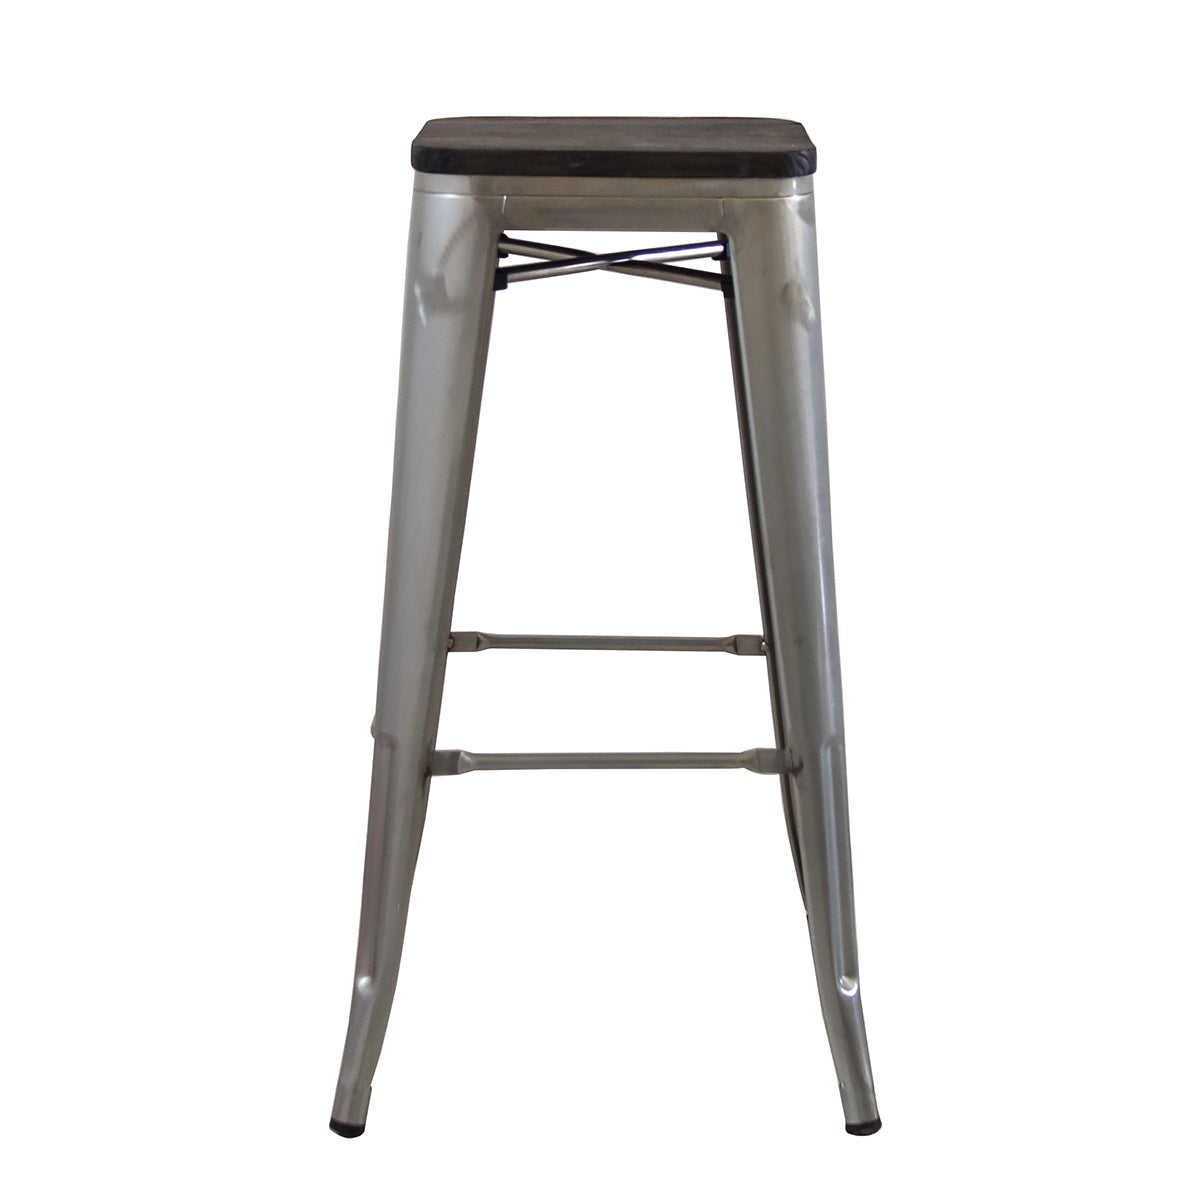 Remarkable Buschman Metal Bar Stools 30 Bar Height Indoor Outdoor And Stackable Set Of 4 Galvanized With Wooden Seat Squirreltailoven Fun Painted Chair Ideas Images Squirreltailovenorg